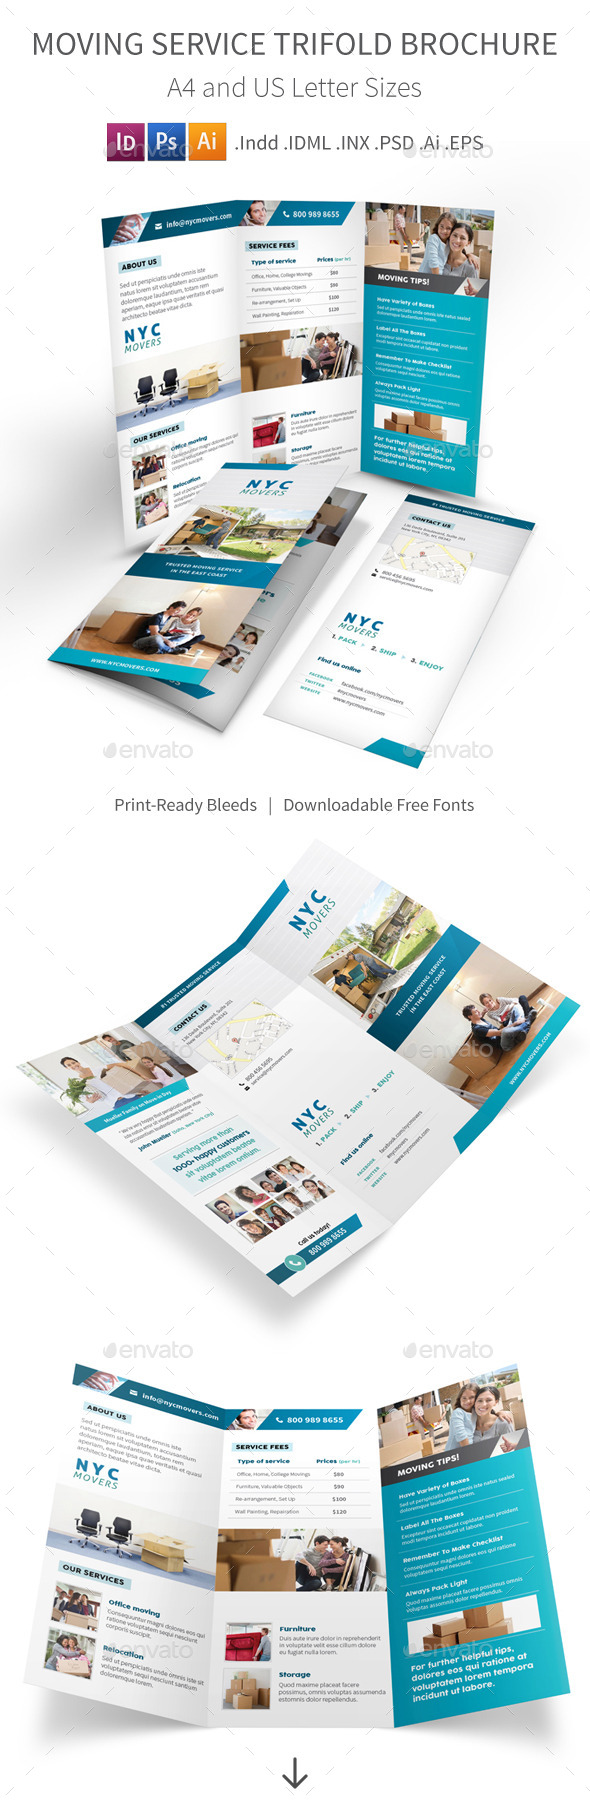 GraphicRiver Moving Service Trifold Brochure 10923965